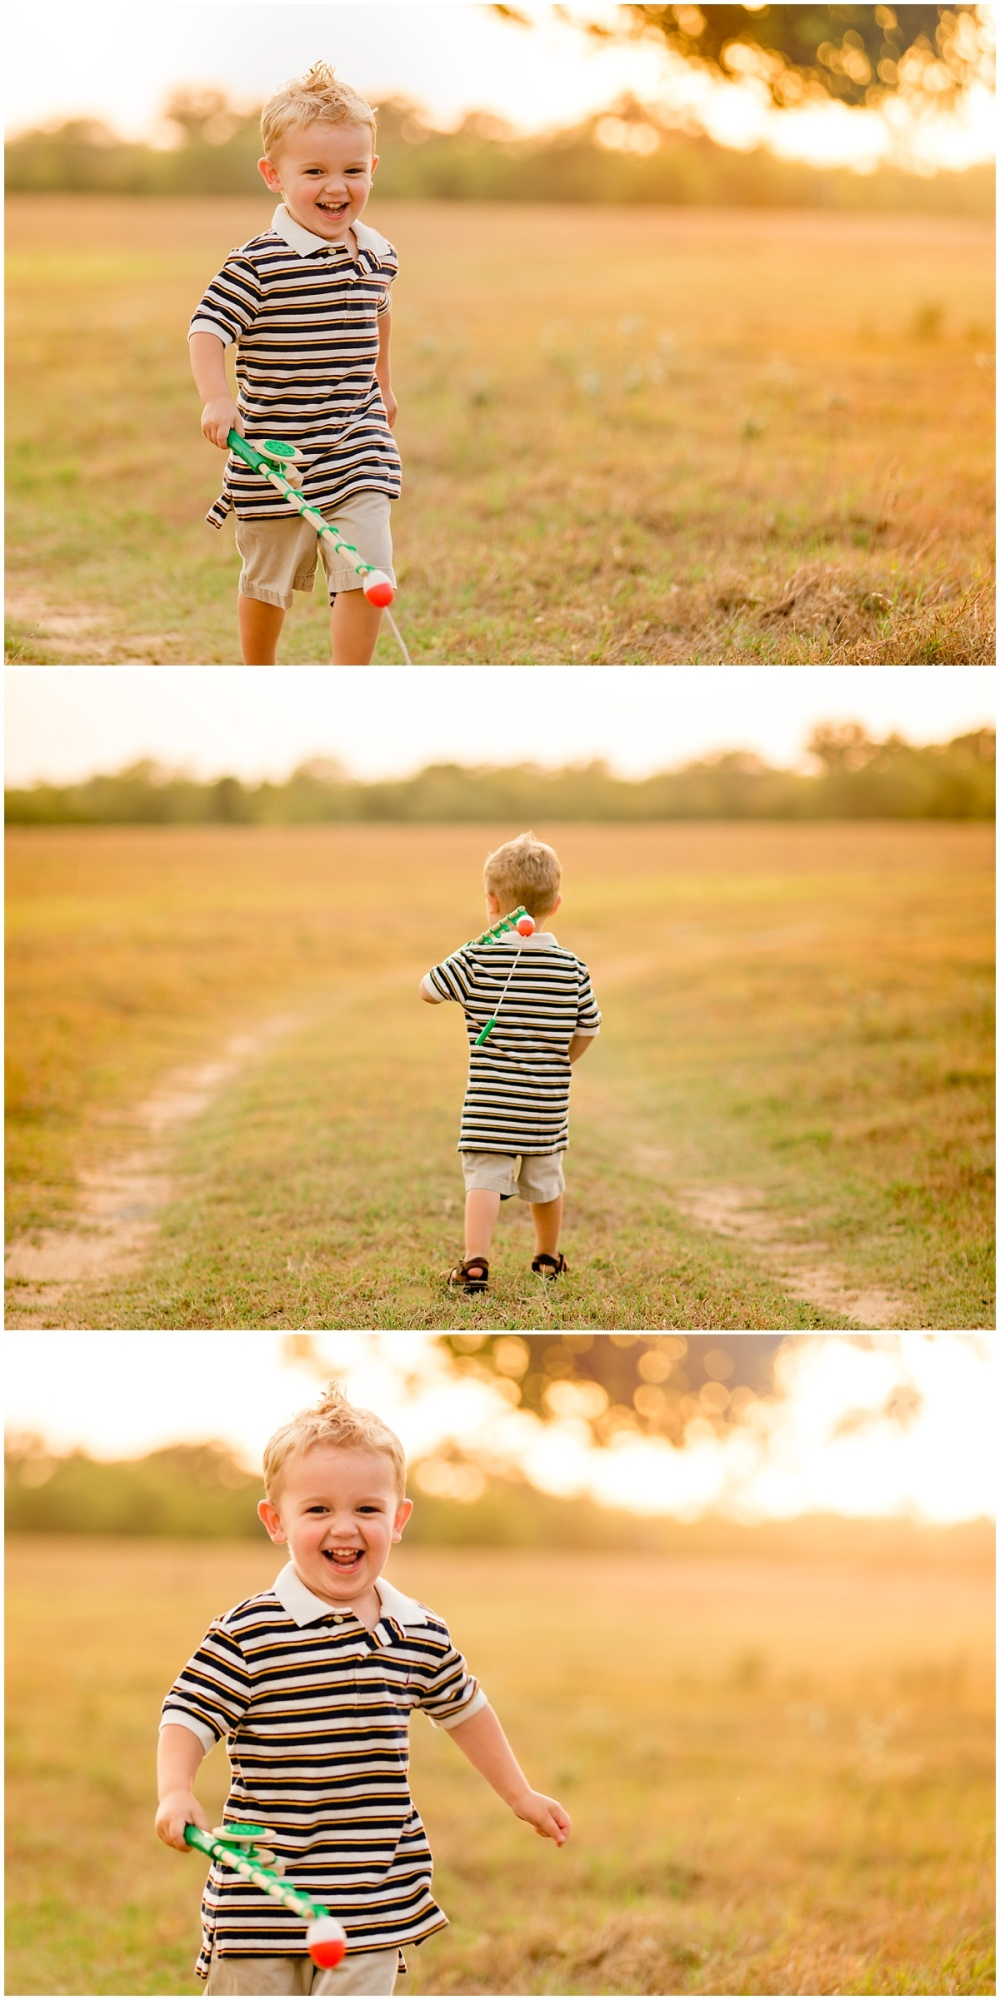 Family-Children-Portraits-Maternity-Photos-San-Antonio-Hill-Country-Texas-Carly-Barton-Photography_0004.jpg